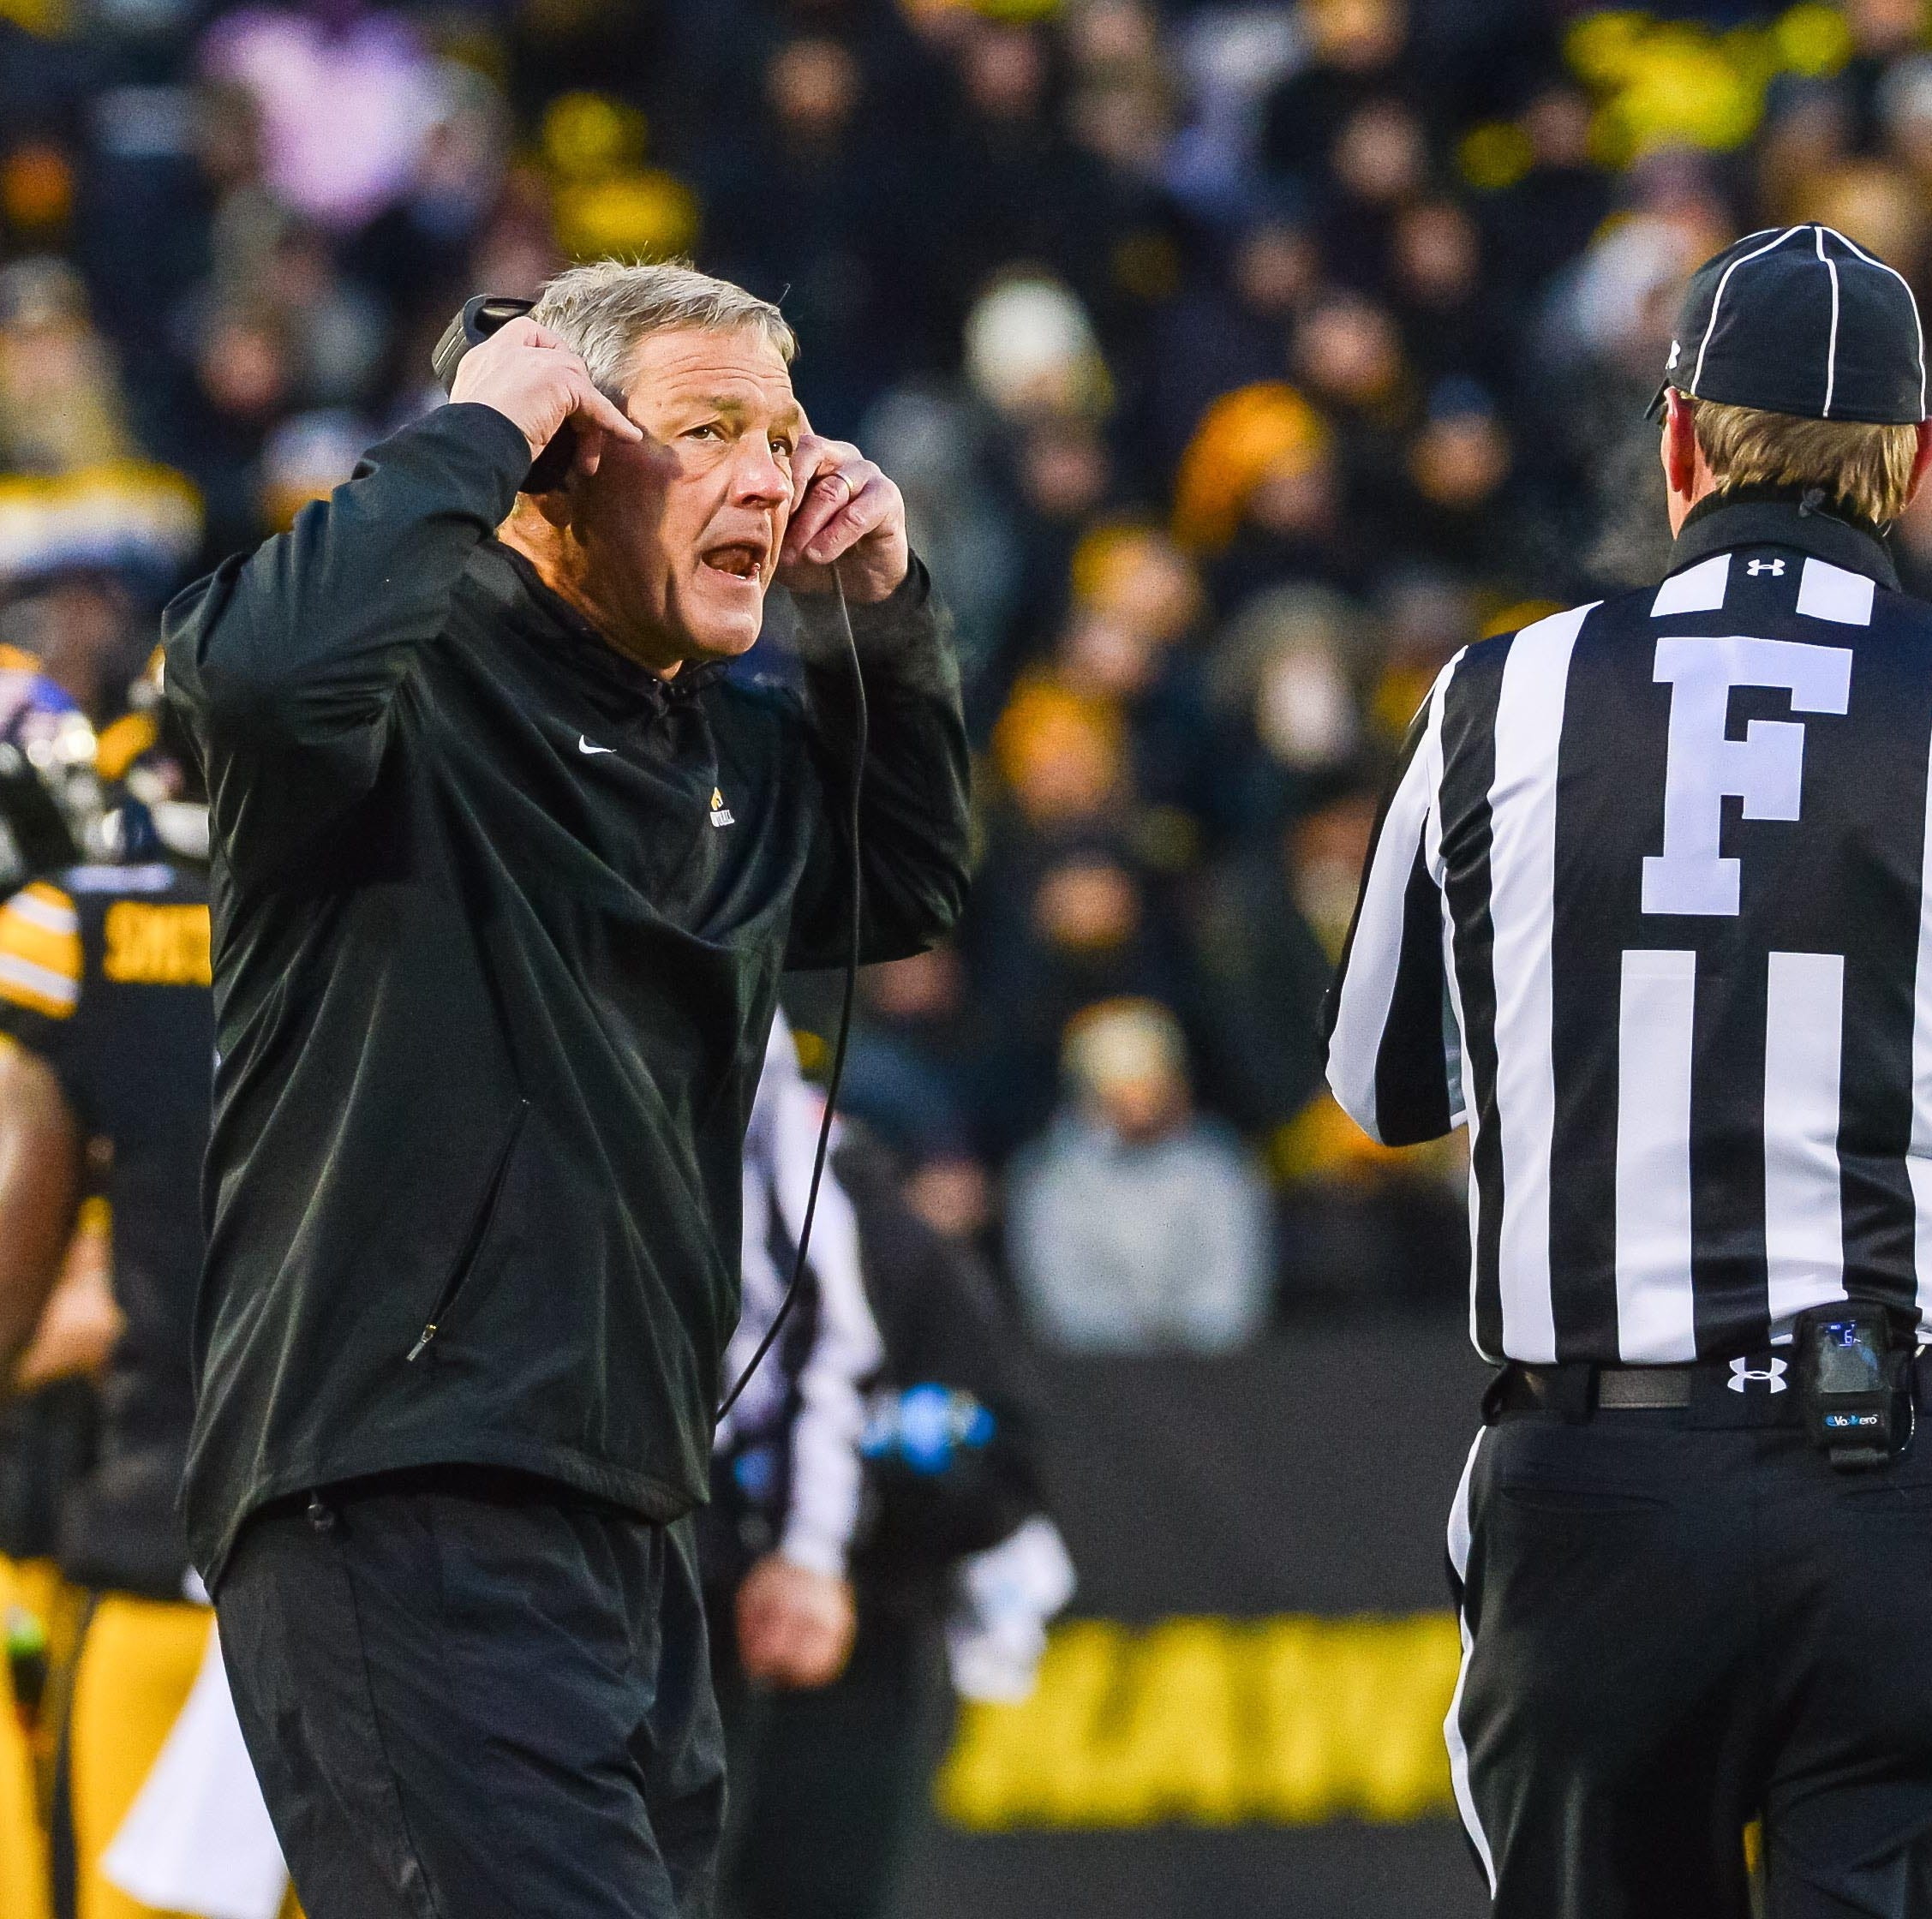 Iowa football: Concrete answers hard to find amid Hawkeyes' November skid